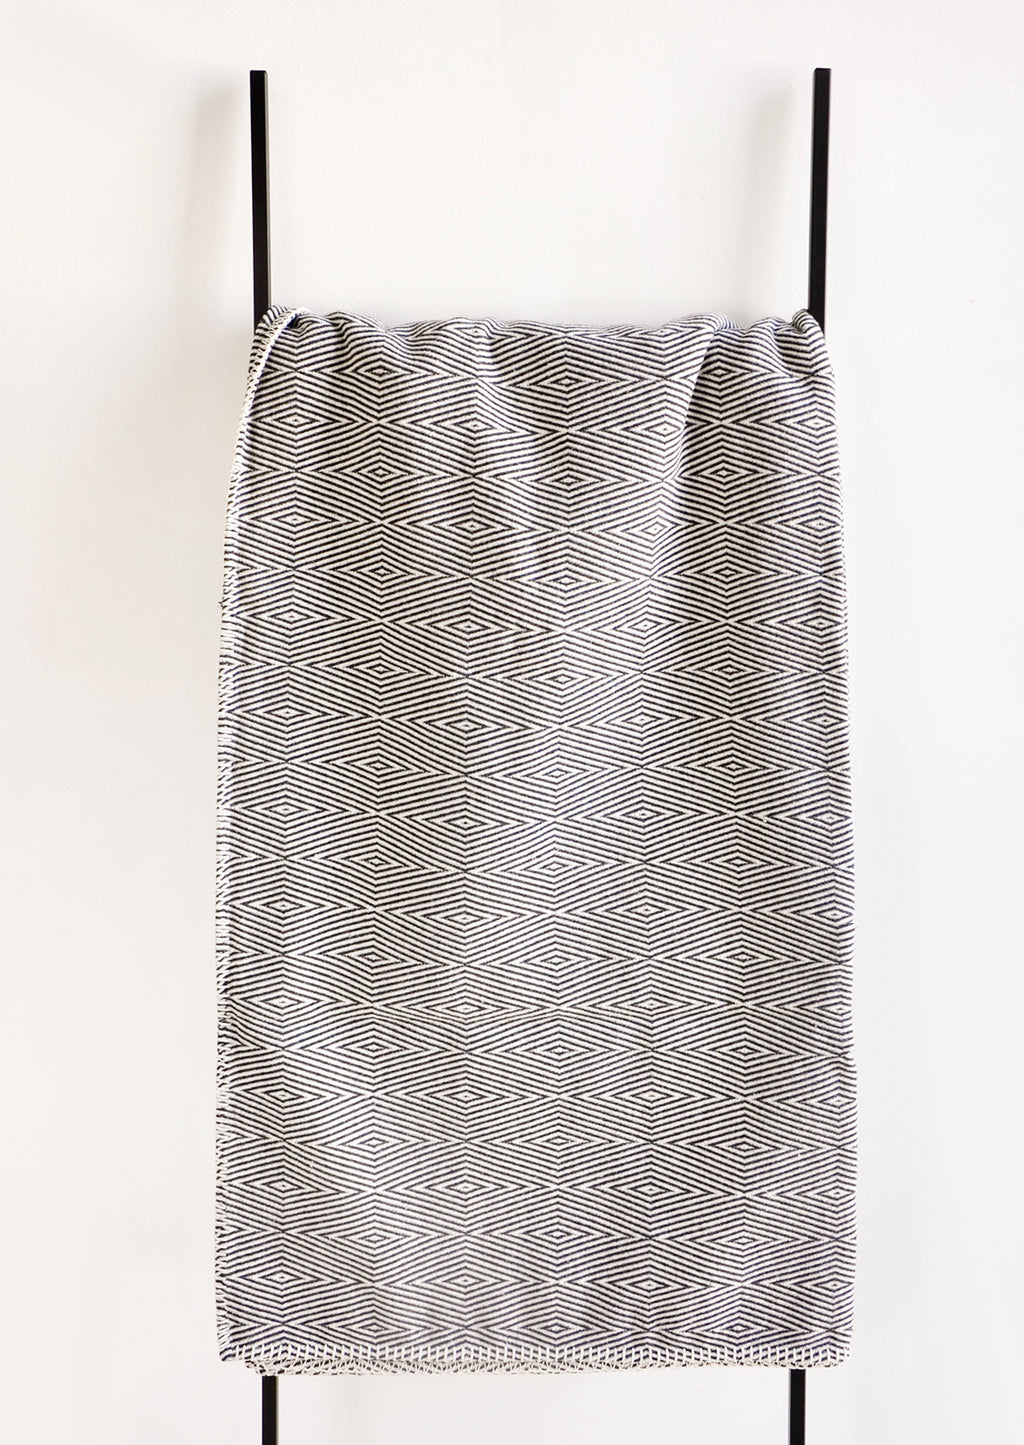 3: Blanket with Geometric Pattern in Black & White on Ladder - LEIF